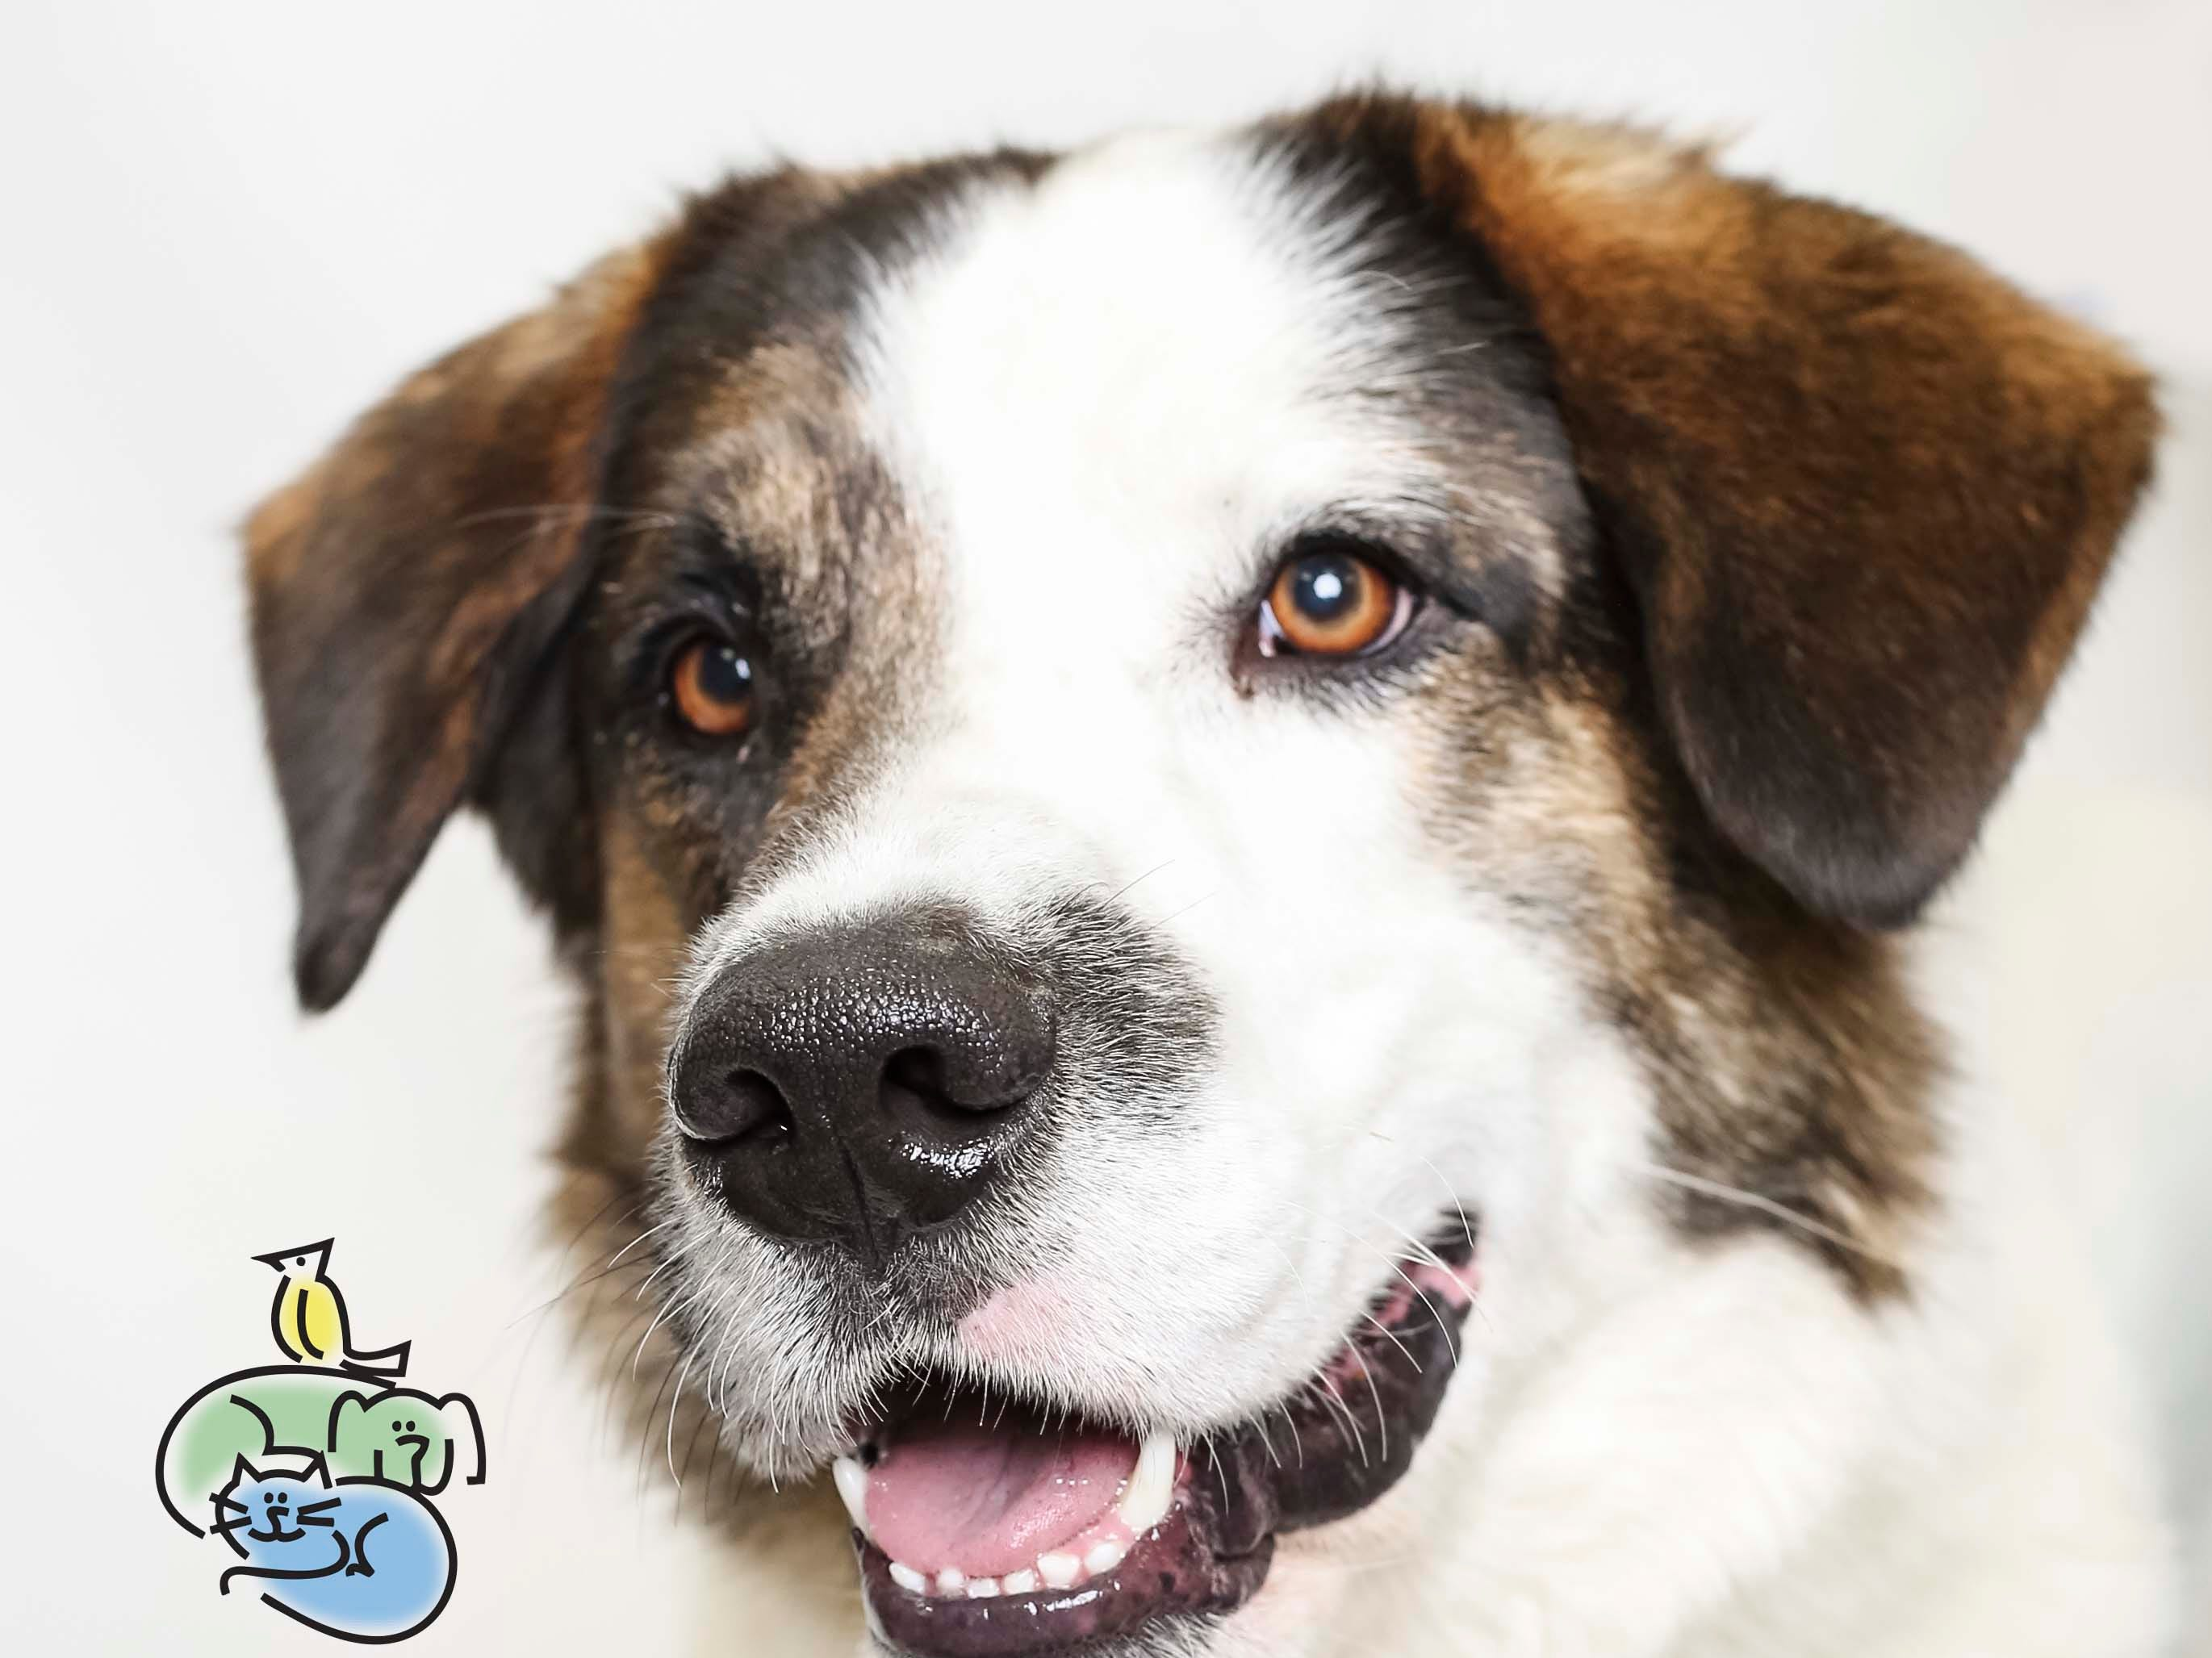 Phoenix is up for adoption at Young-Williams animal center on Thursday, March 21, 2019.